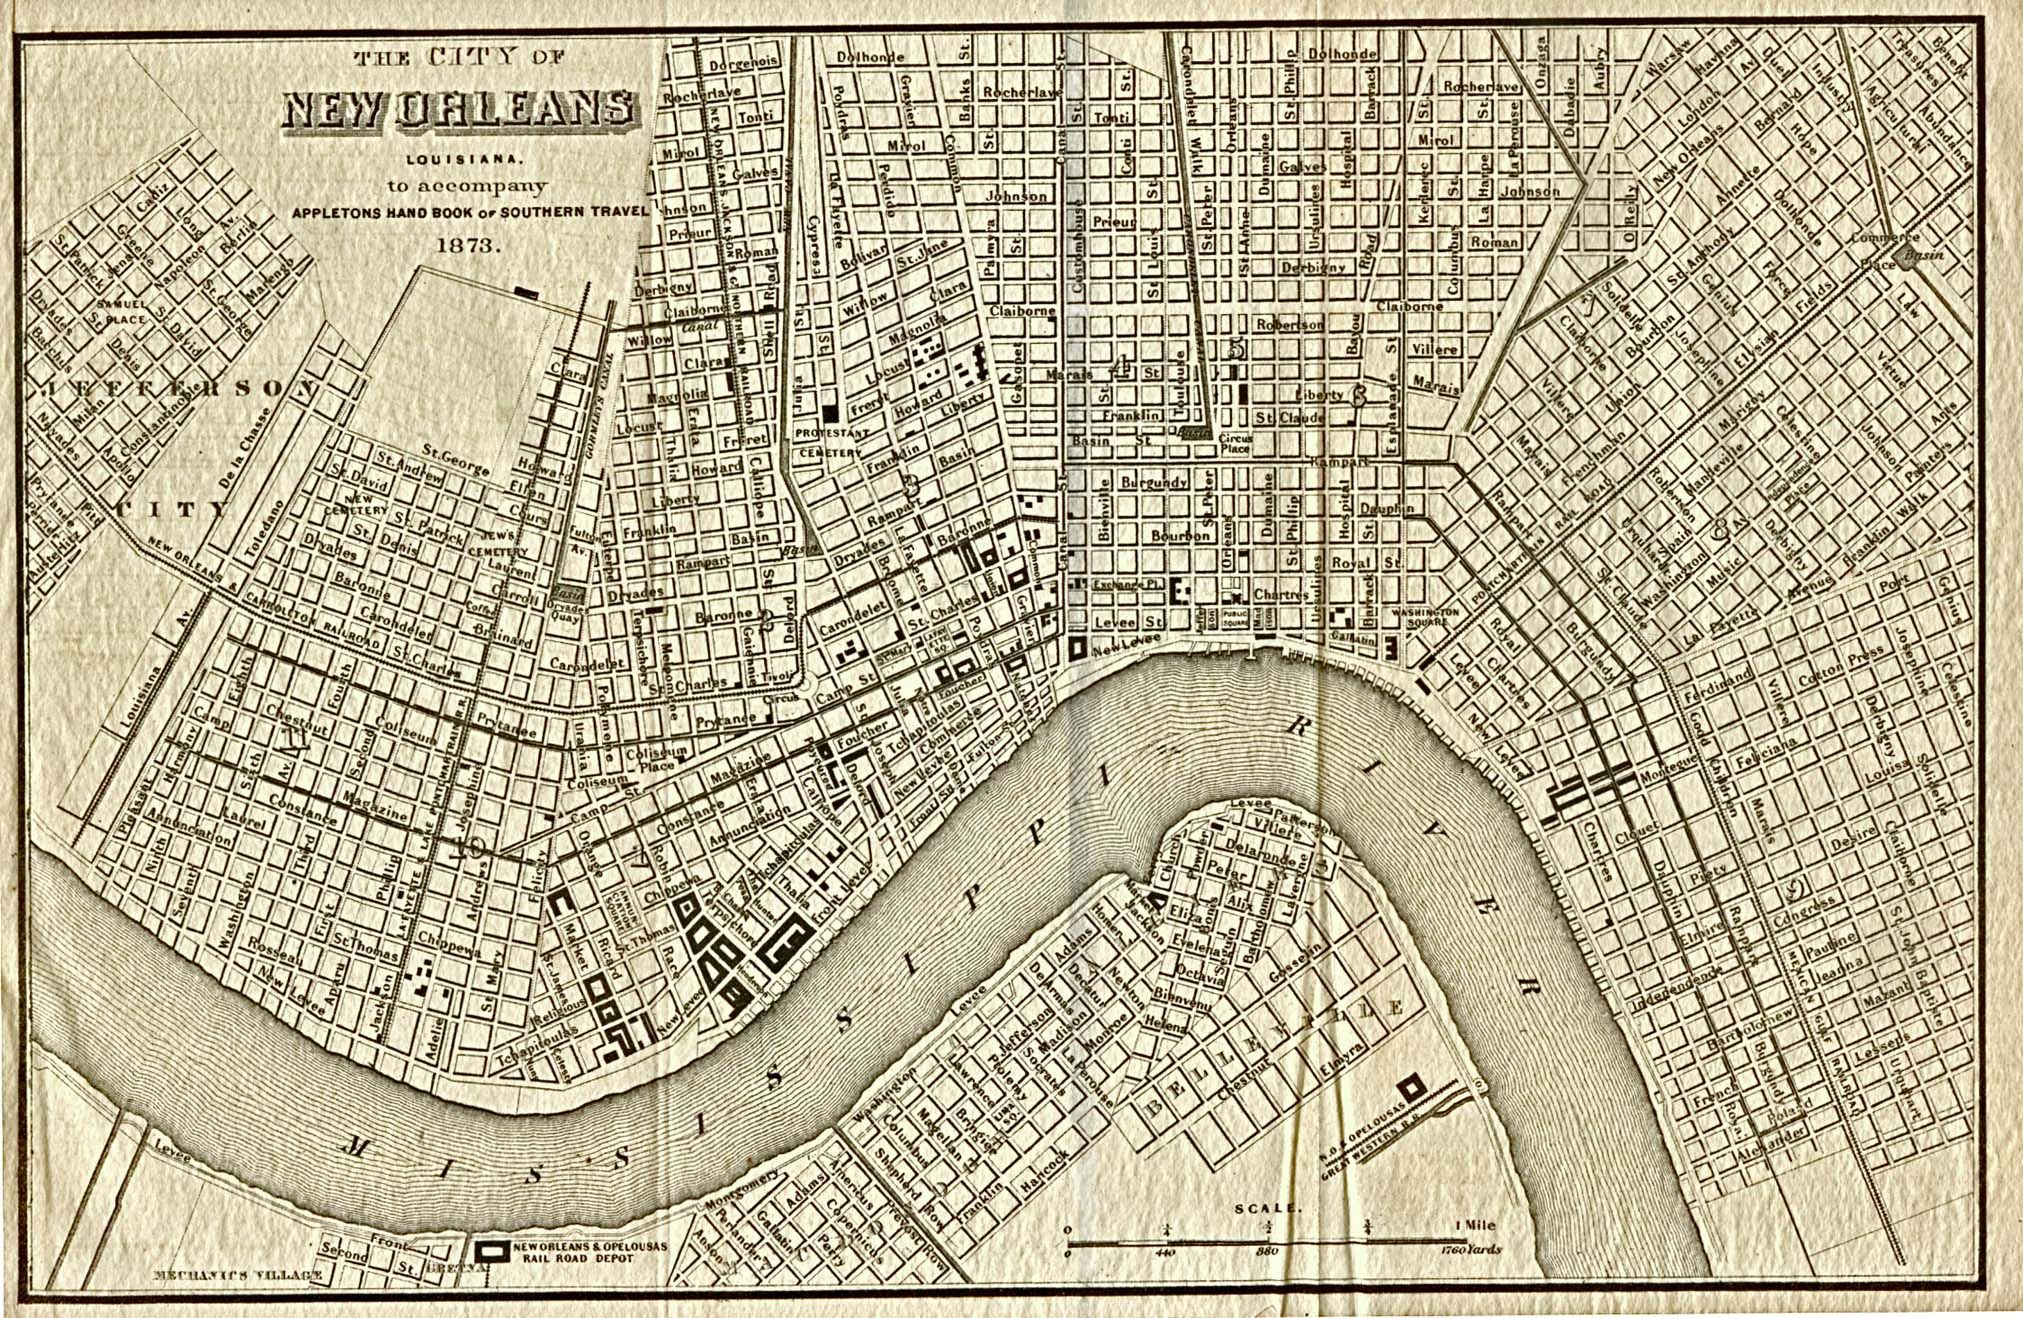 vintage new orleans map Greater New Orleans Area Map Louisiana Maps Perry Castaneda vintage new orleans map